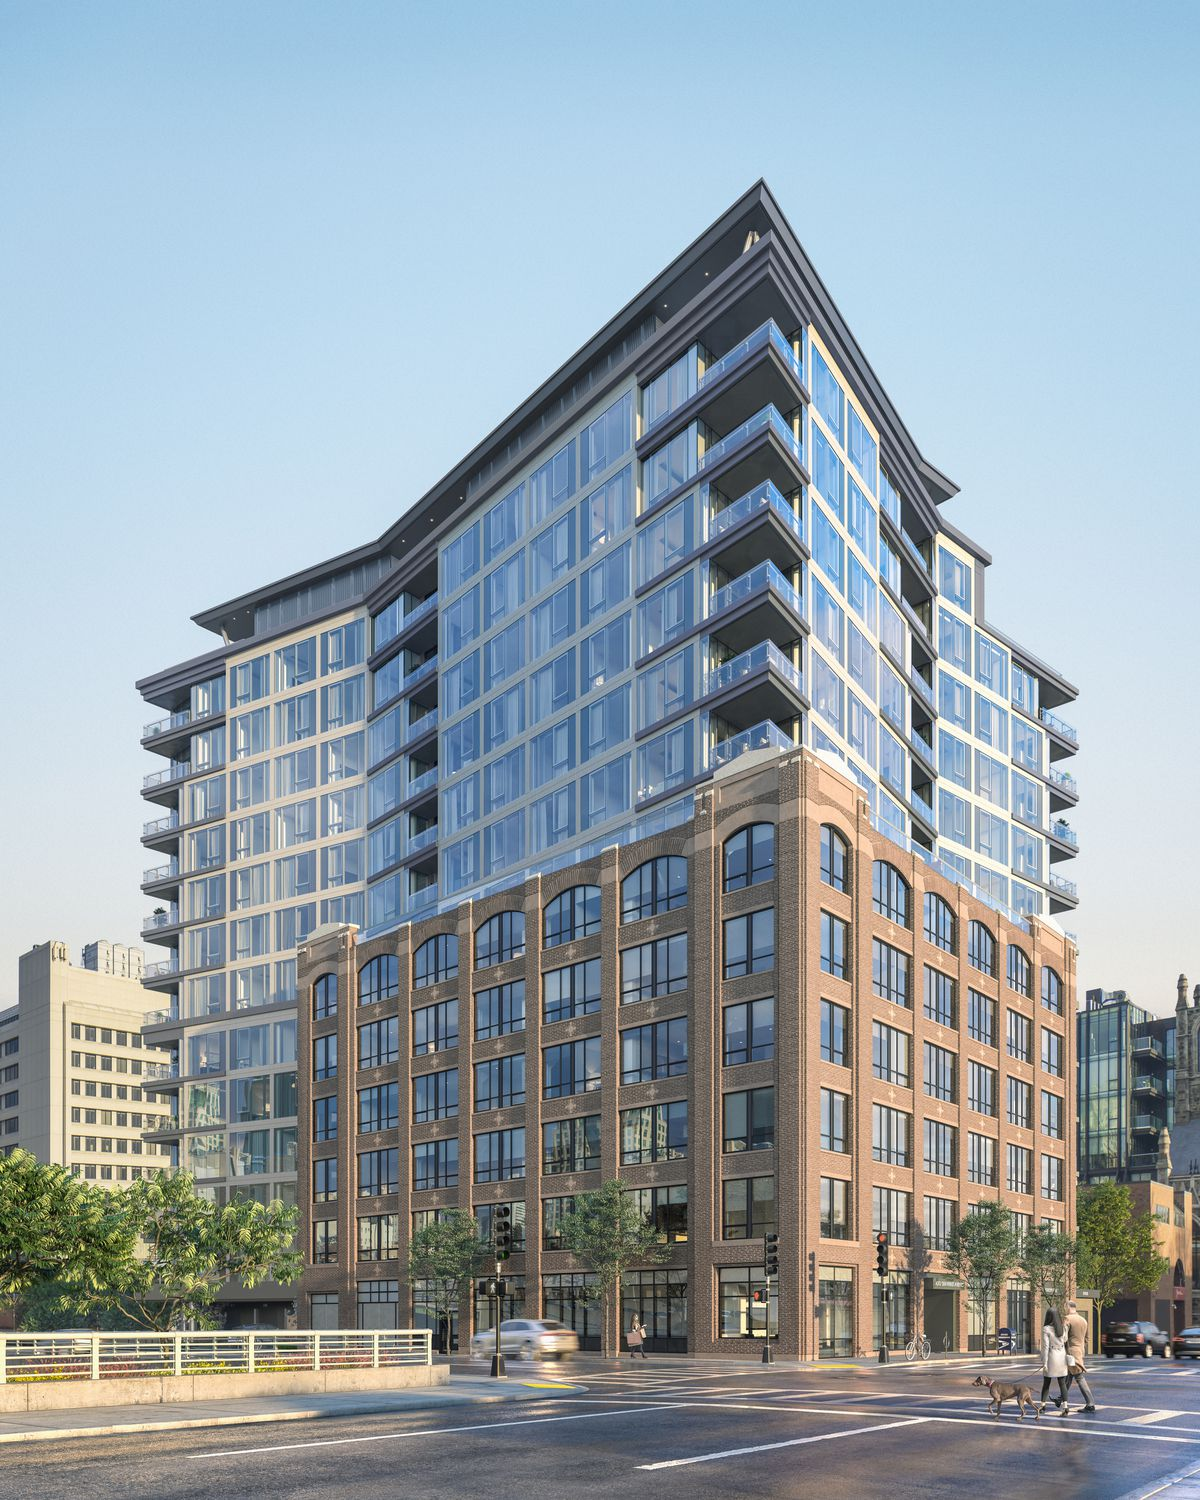 Rendering of a 13-story, mostly glass, squarish building.